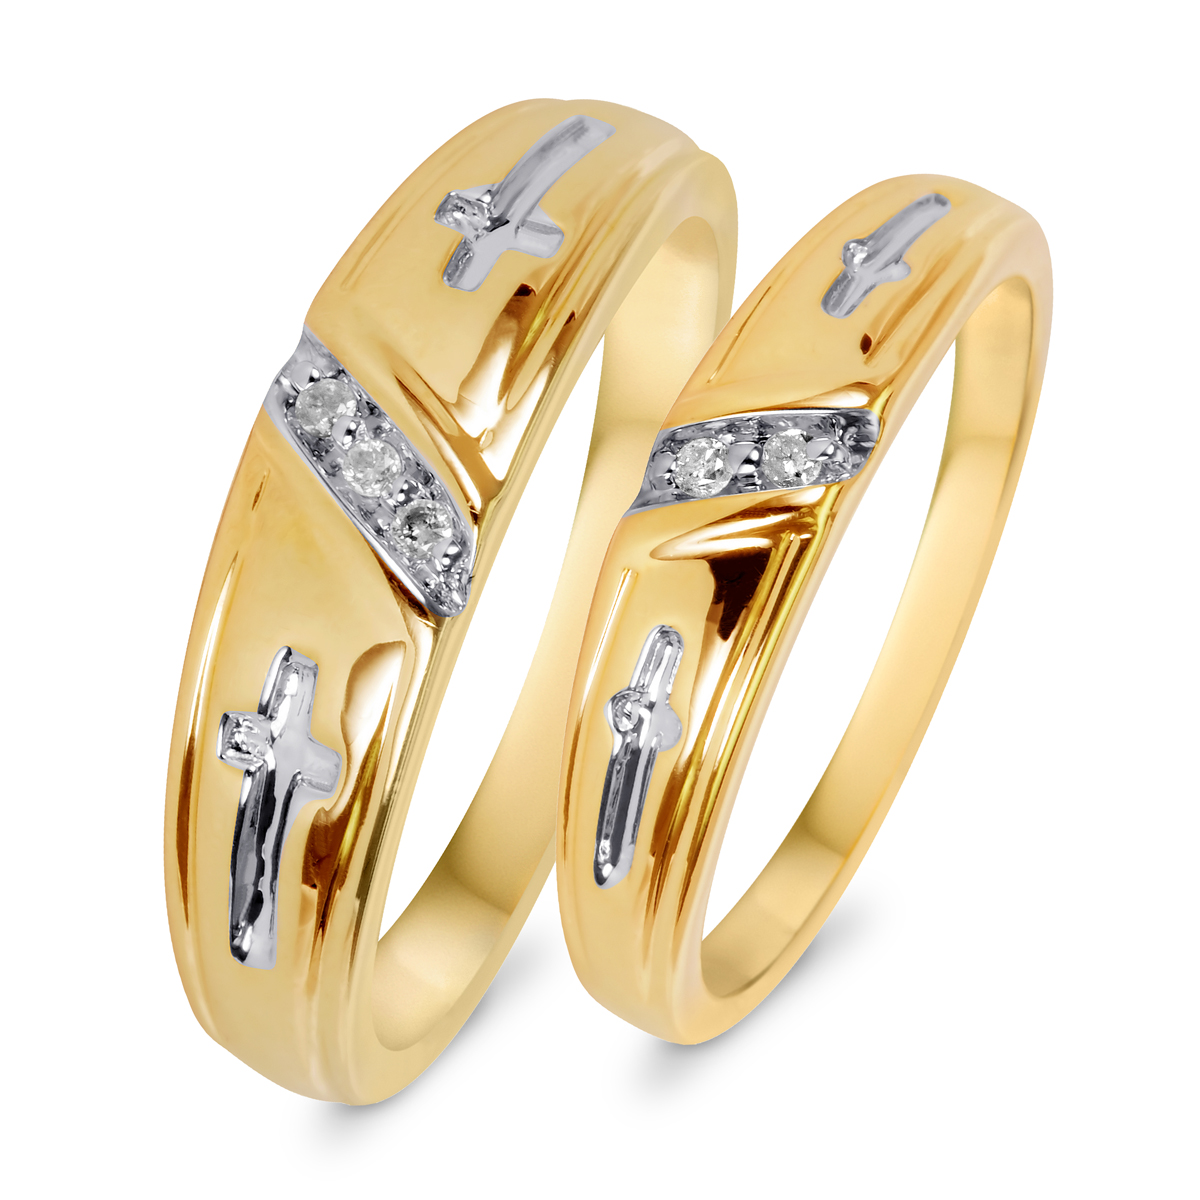 1 20 Carat T W Diamond His And Hers Wedding Band Set 10K Yellow Gold